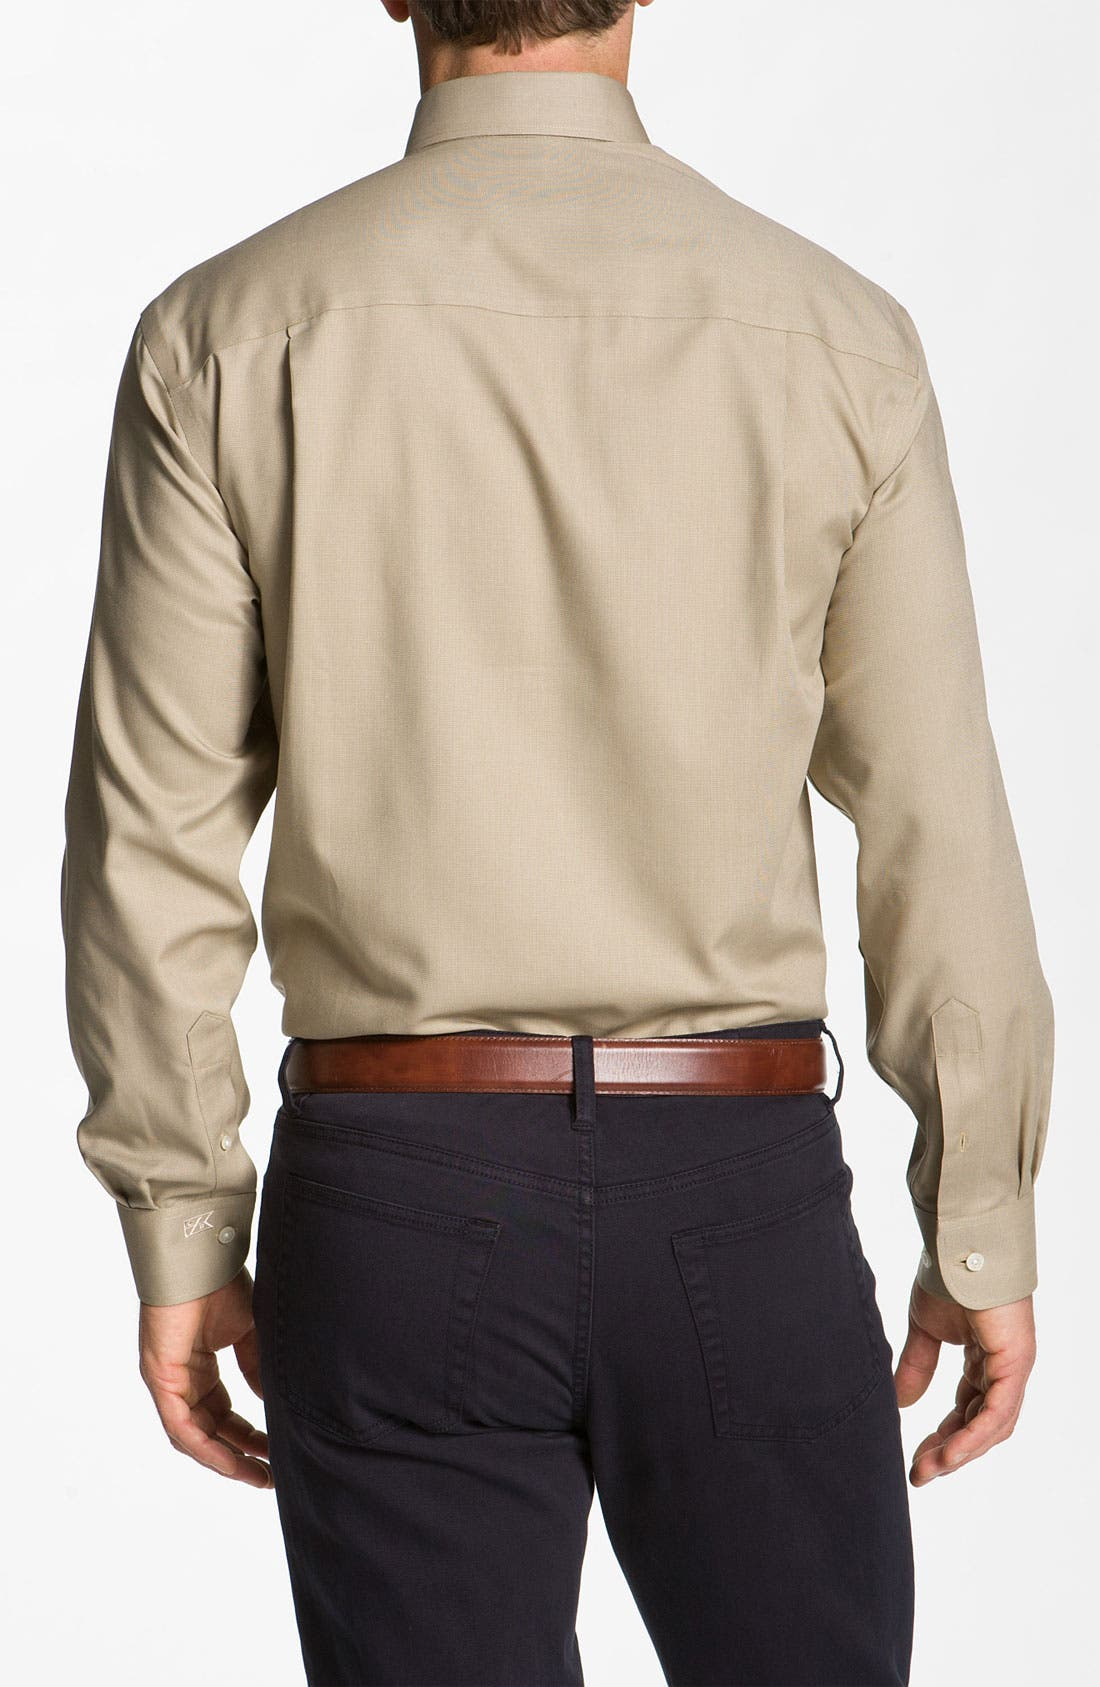 Alternate Image 2  - Cutter & Buck 'Nailshead - Epic Easy Care' Classic Fit Sport Shirt (Big & Tall)